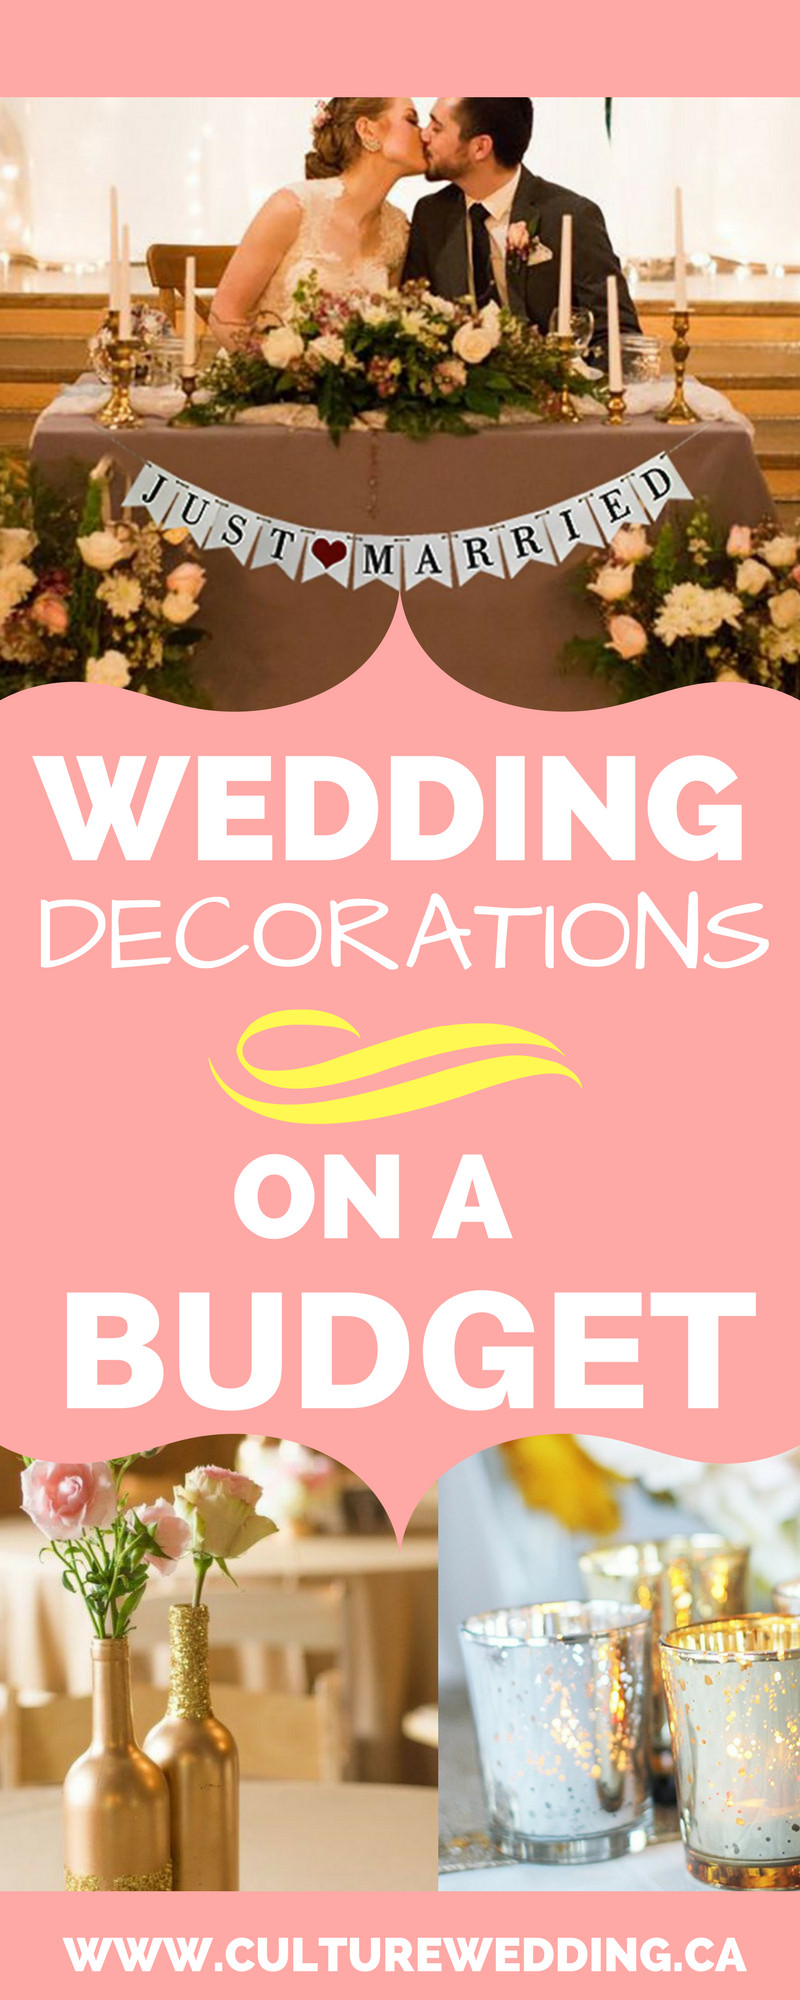 Best ideas about DIY Wedding Decor On A Budget . Save or Pin How to Wedding Decorations on a Bud Get them now Now.